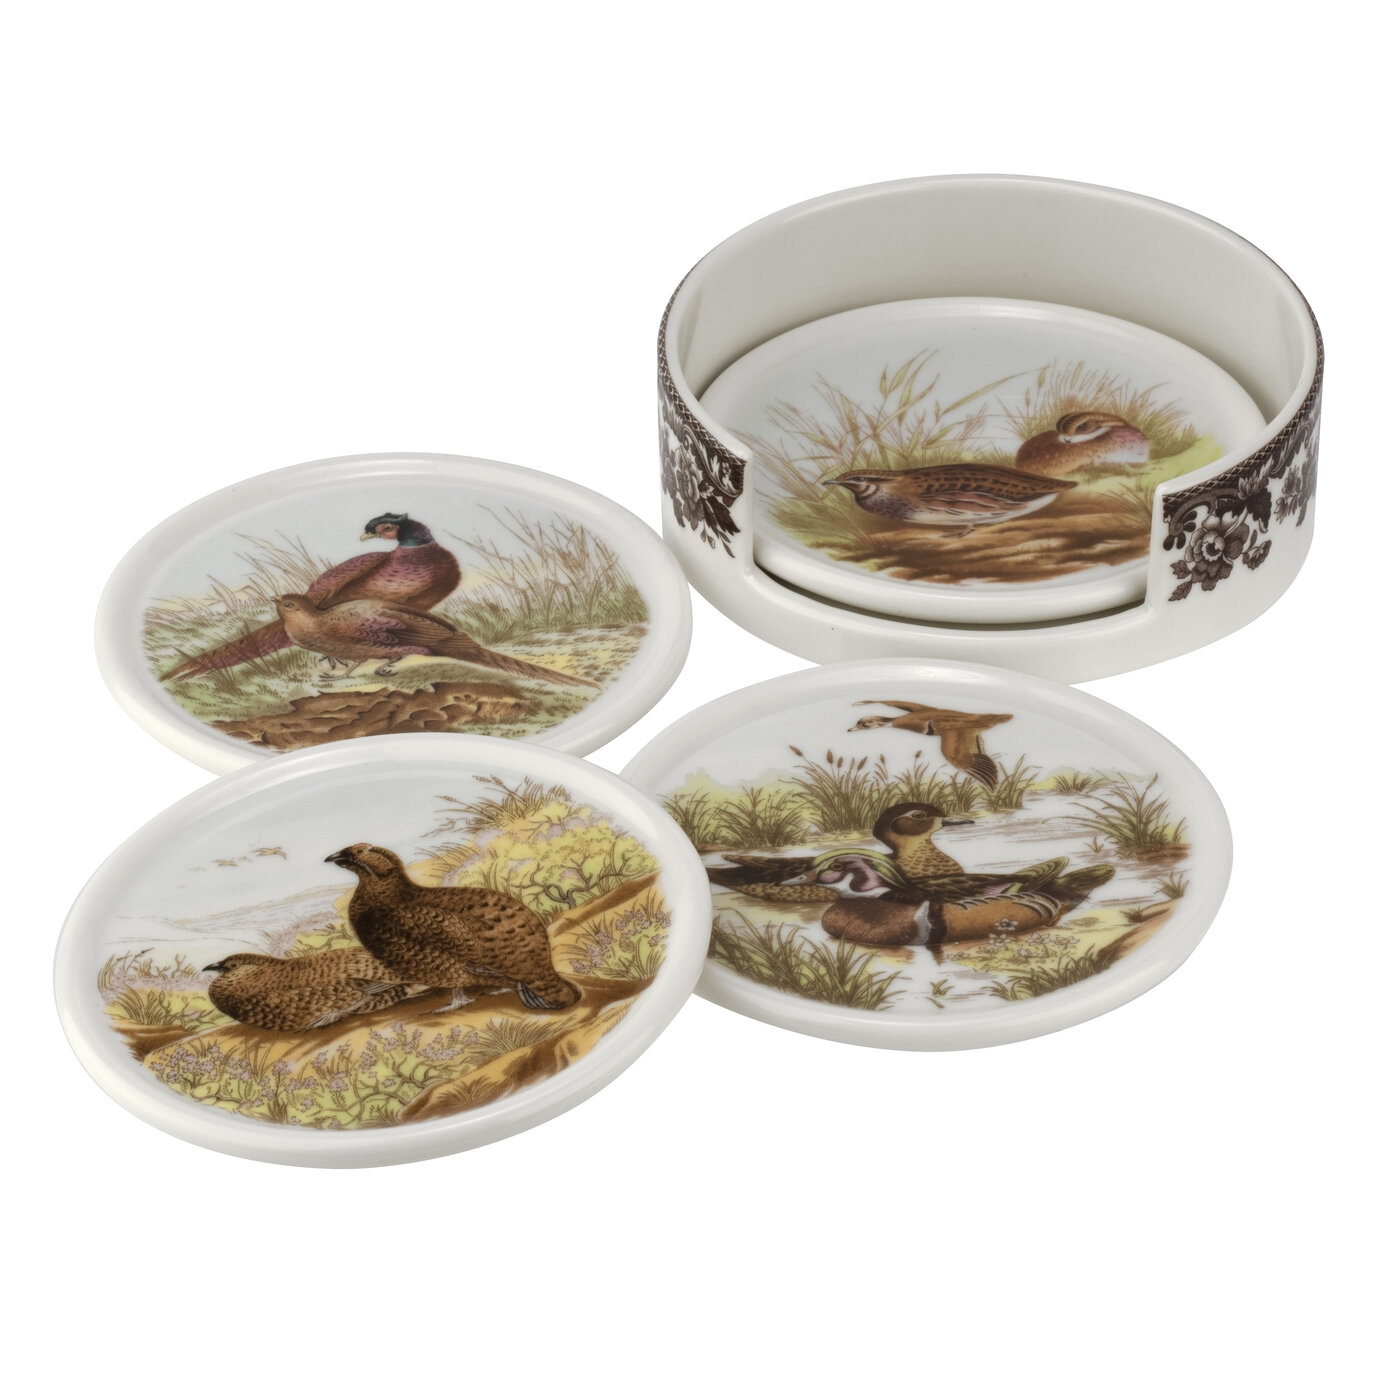 Spode Woodland 4 Piece Ceramic Coasters with Holder  image number 0